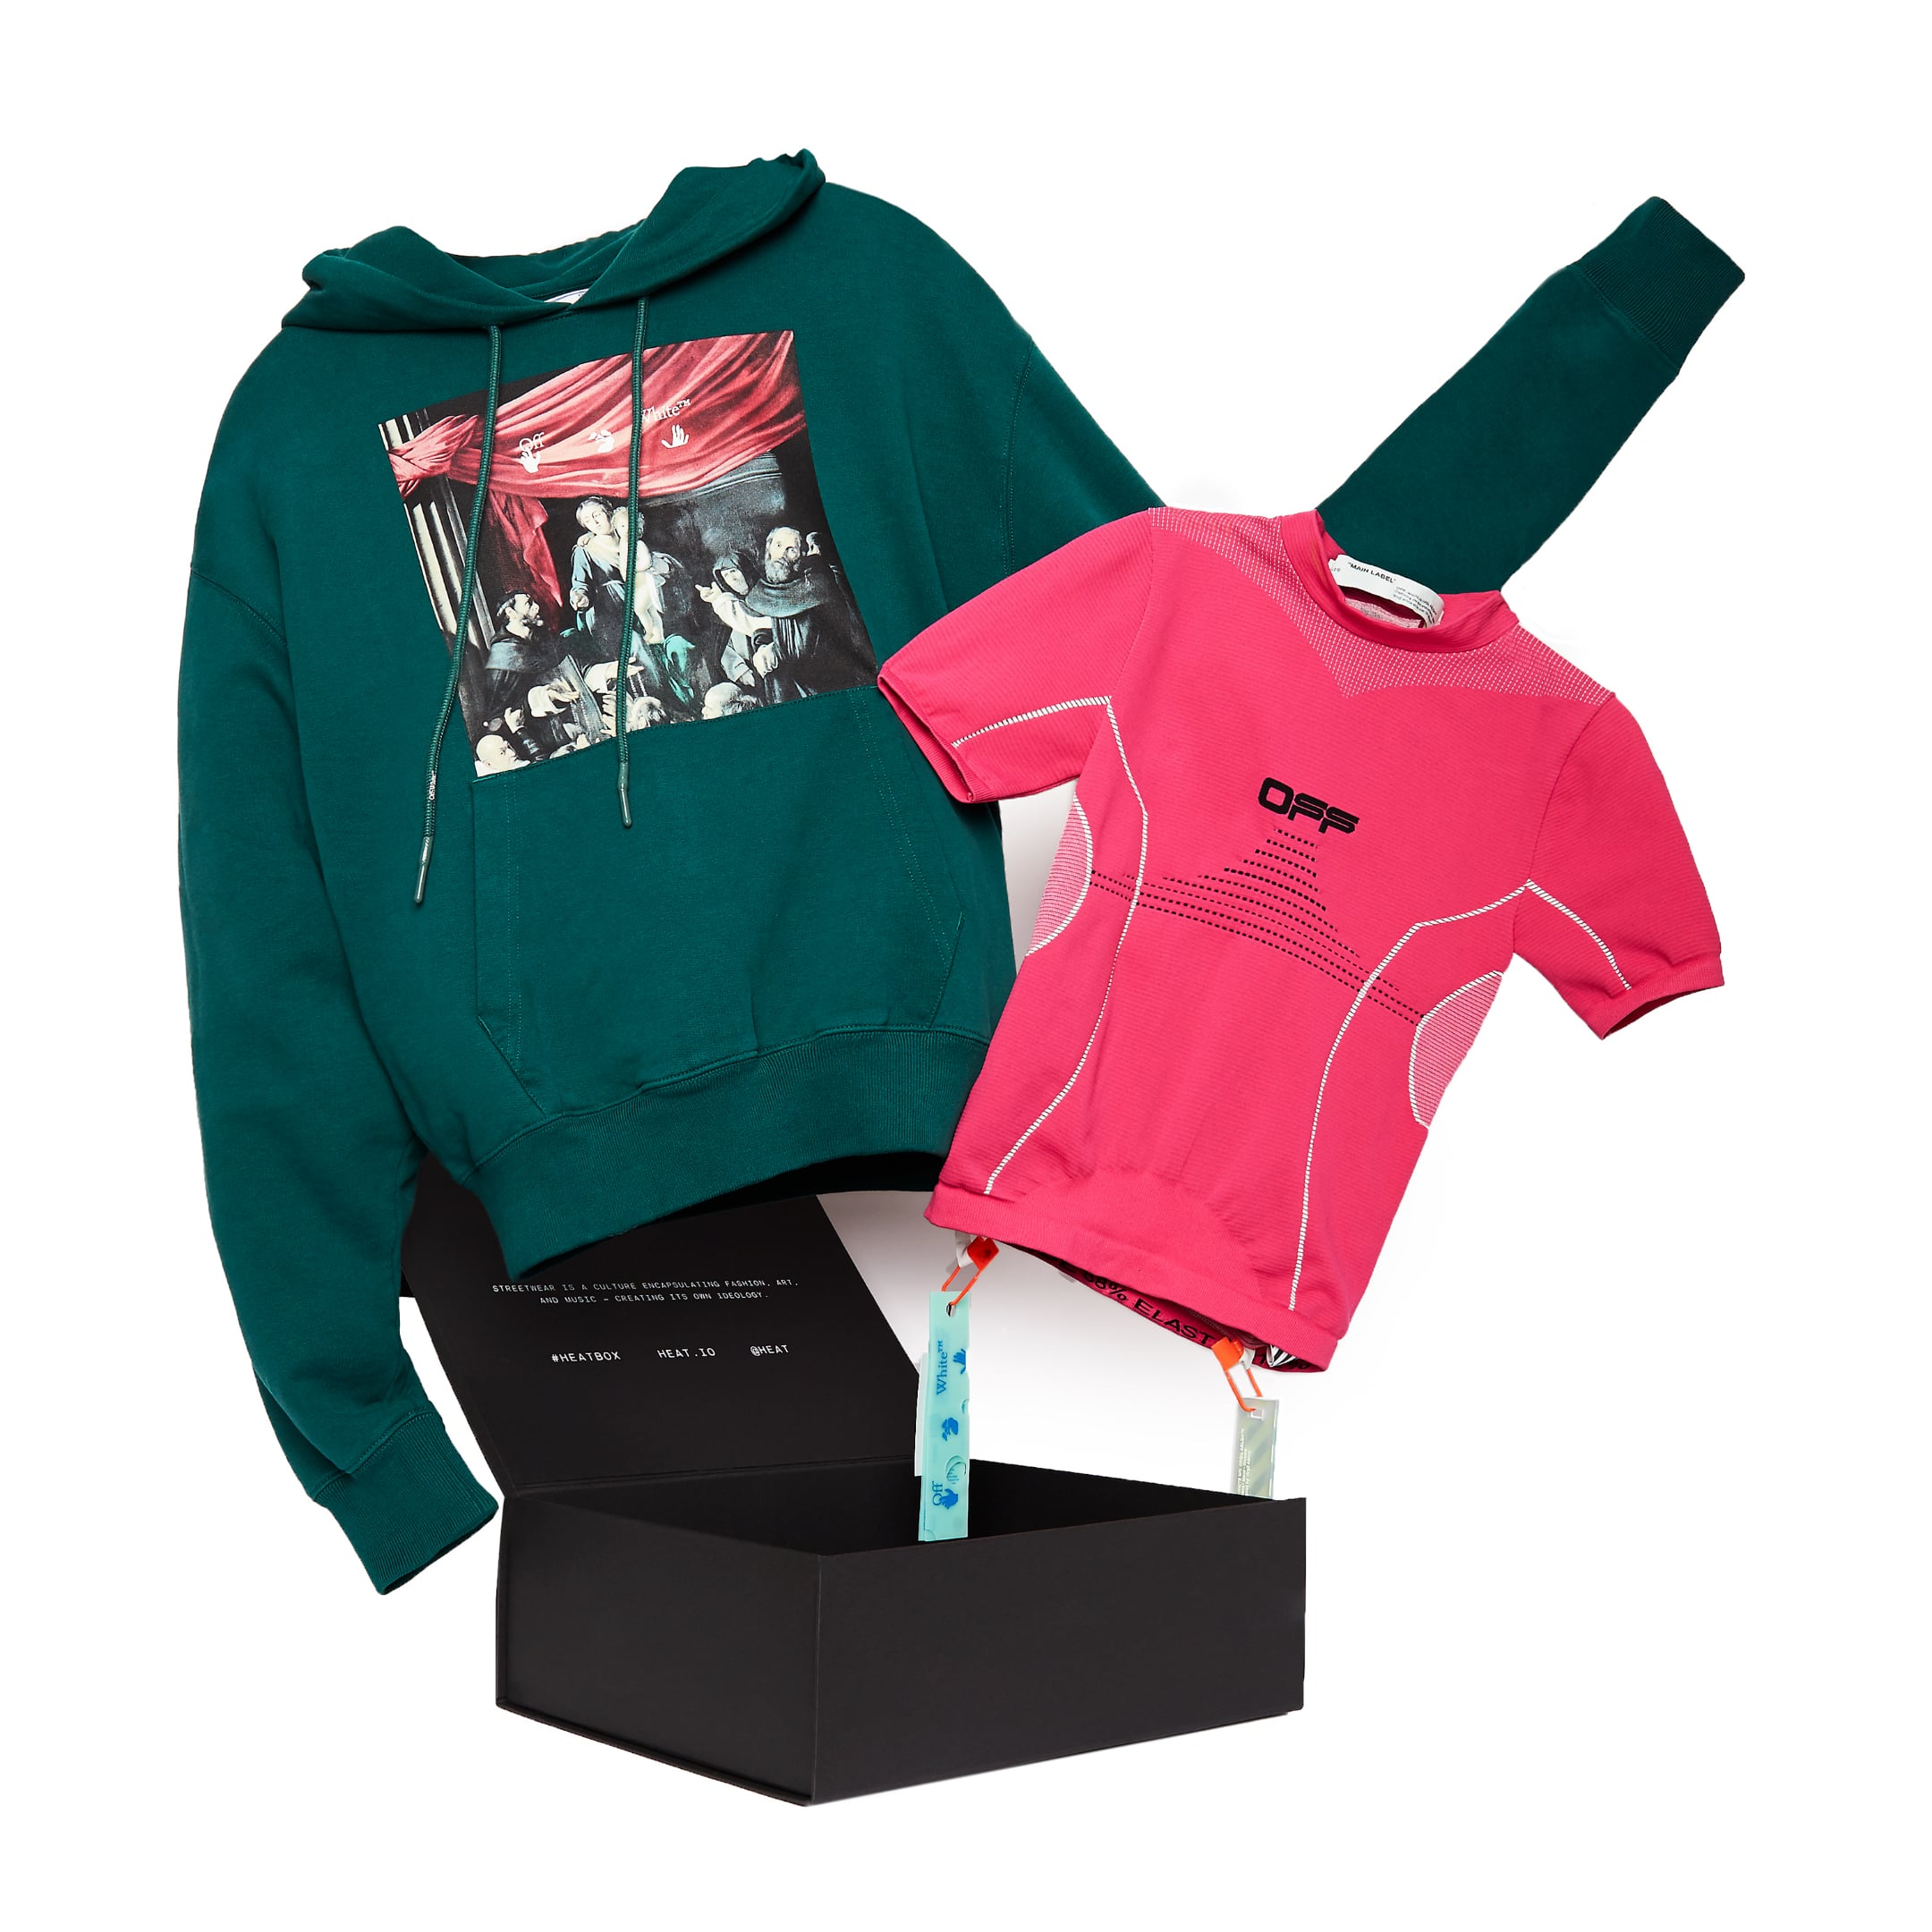 Women's Streetwear Original Box